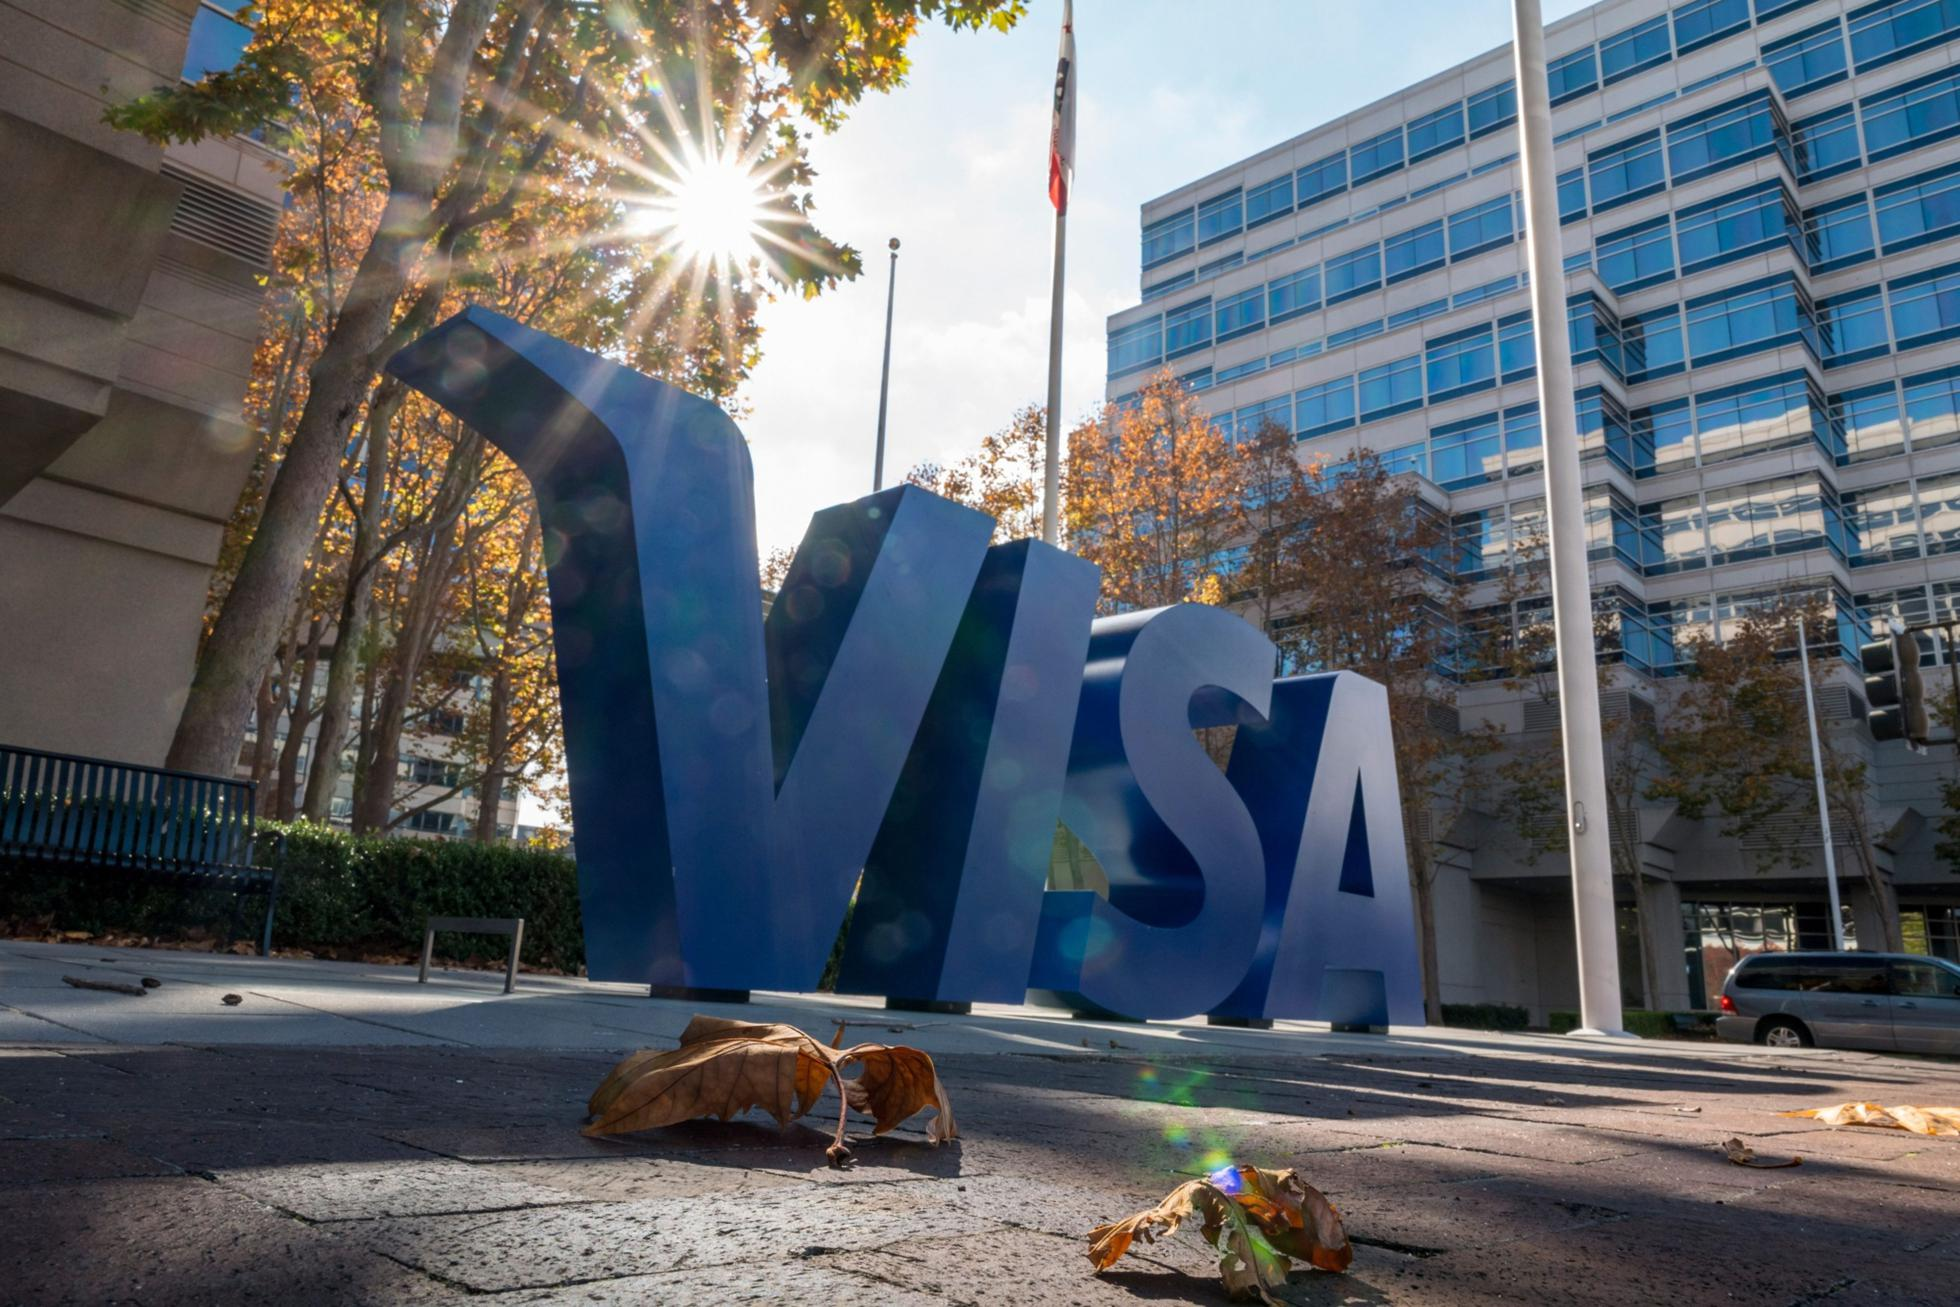 Visa headquarters